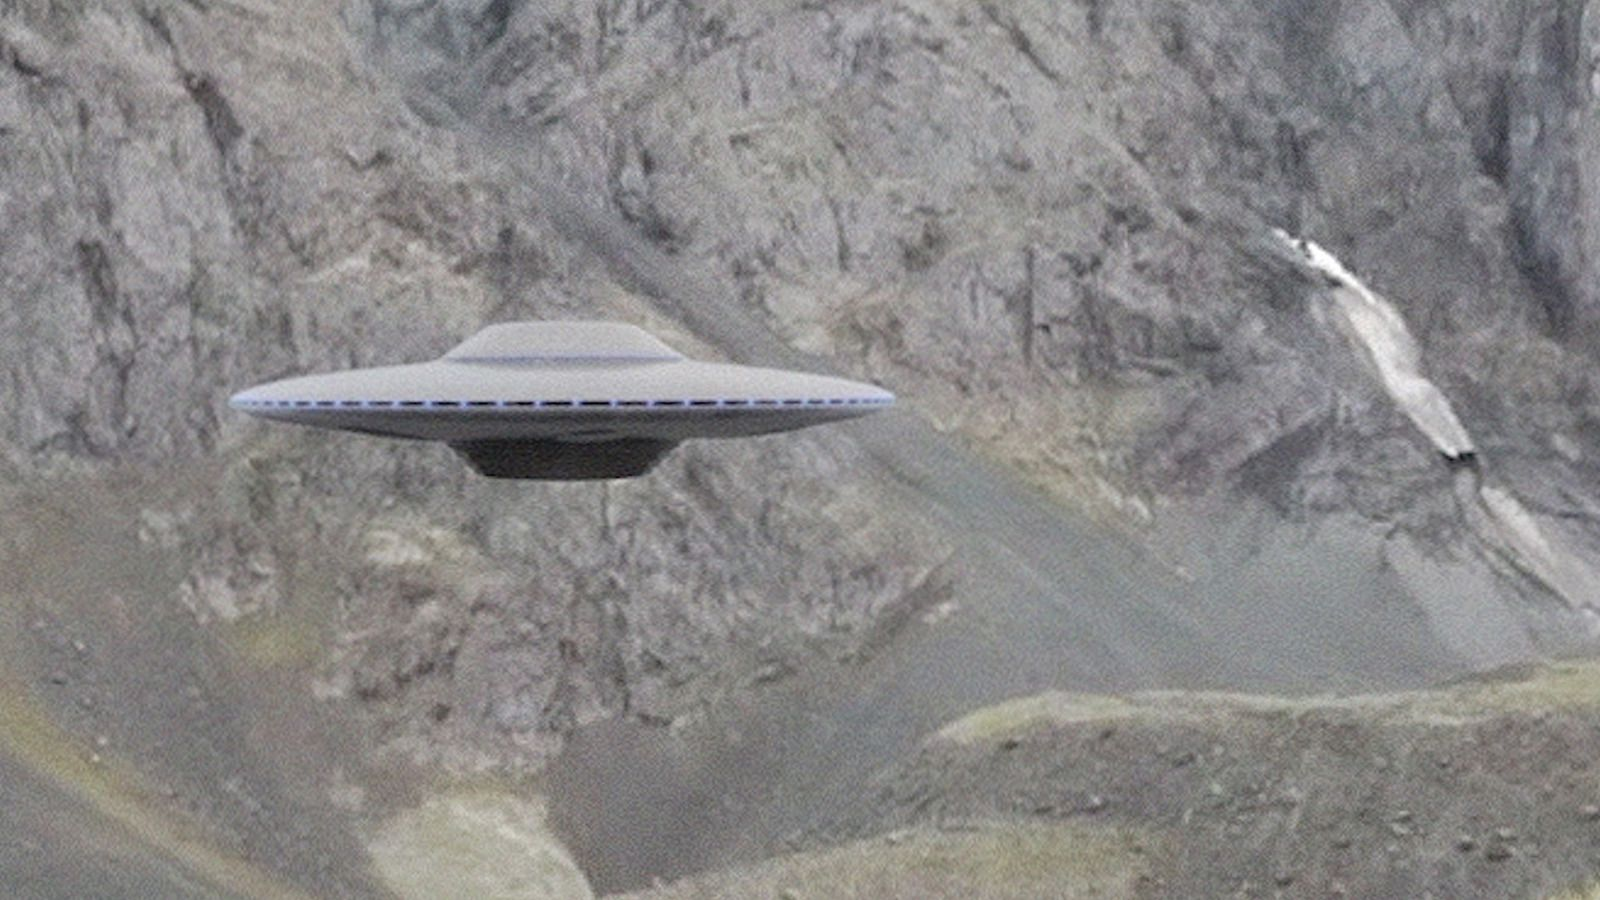 👽 Disc UFO Filmed in the Mountains of Alaska